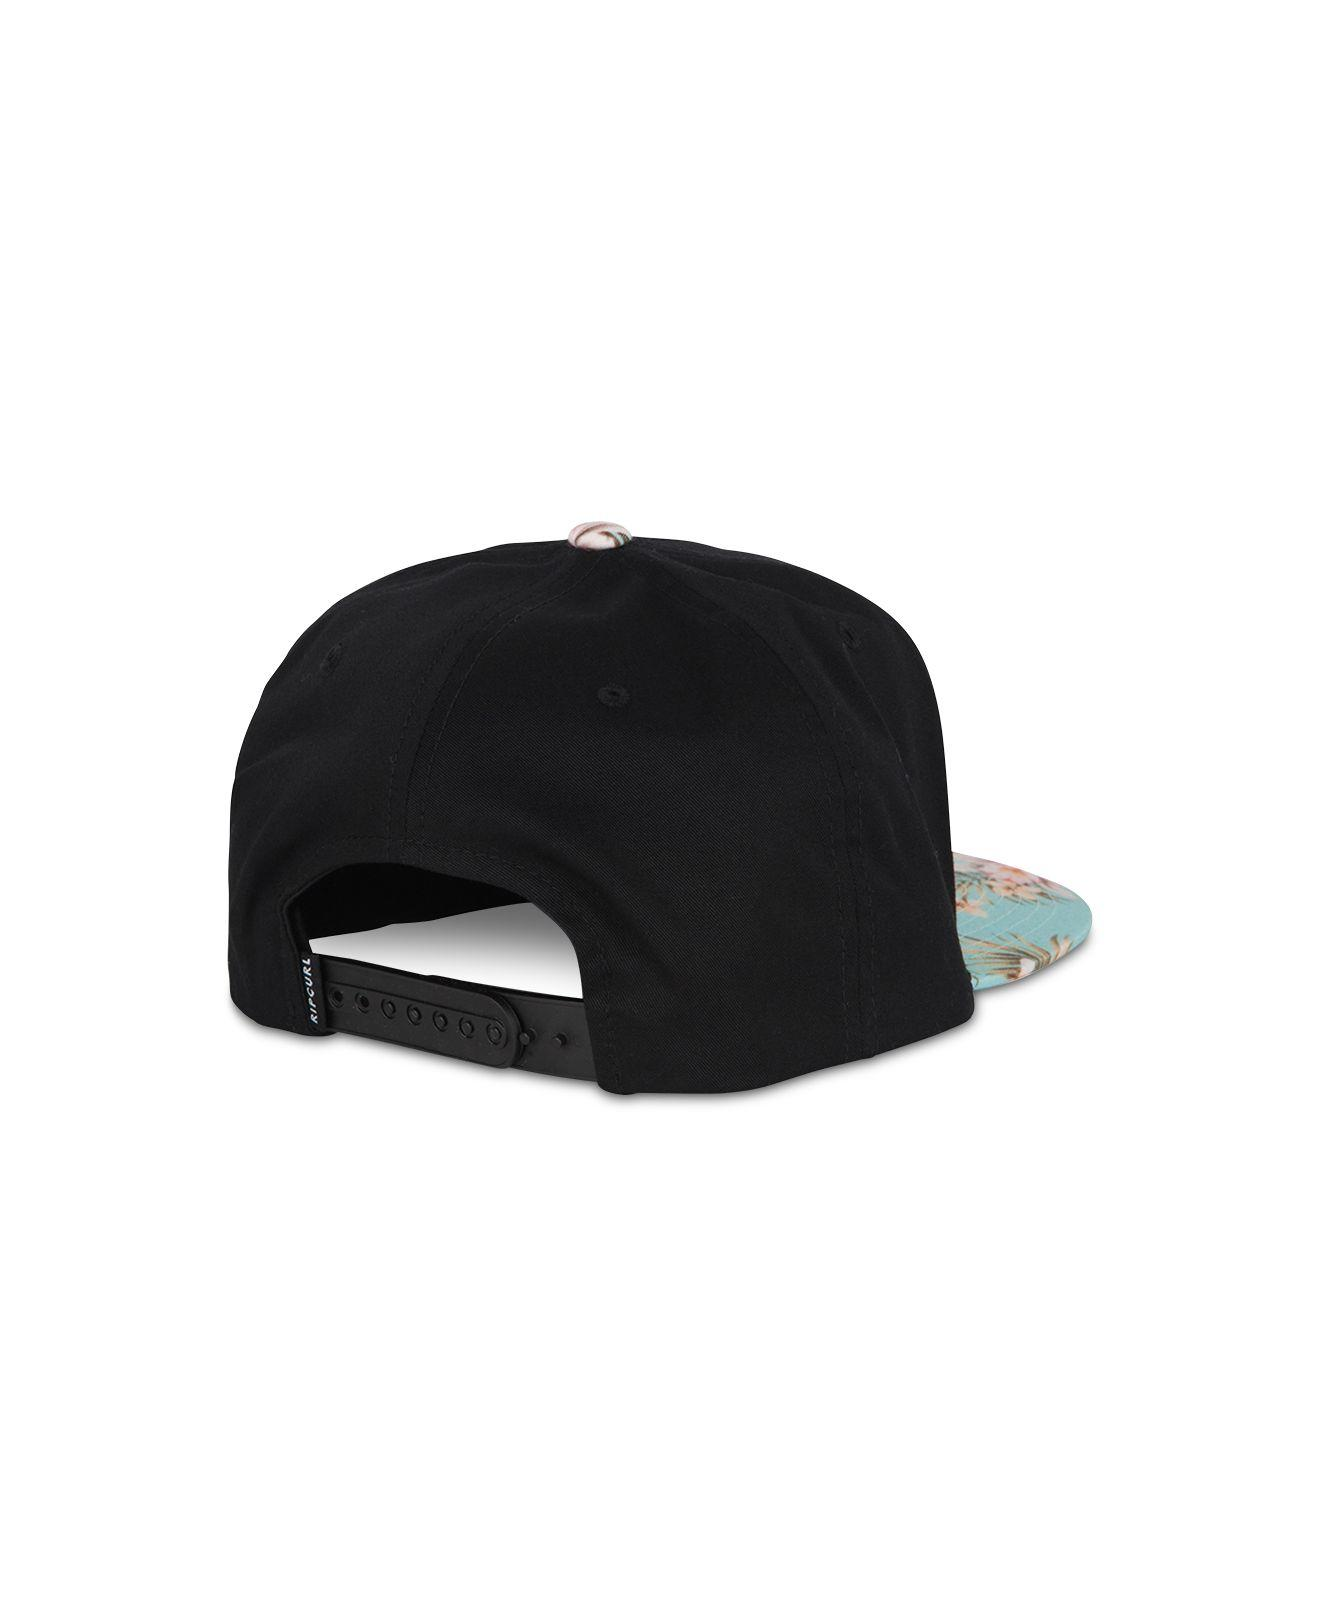 7a1ddd1305a Lyst - Rip Curl Valley Blade Logo Graphic Hat in Black for Men